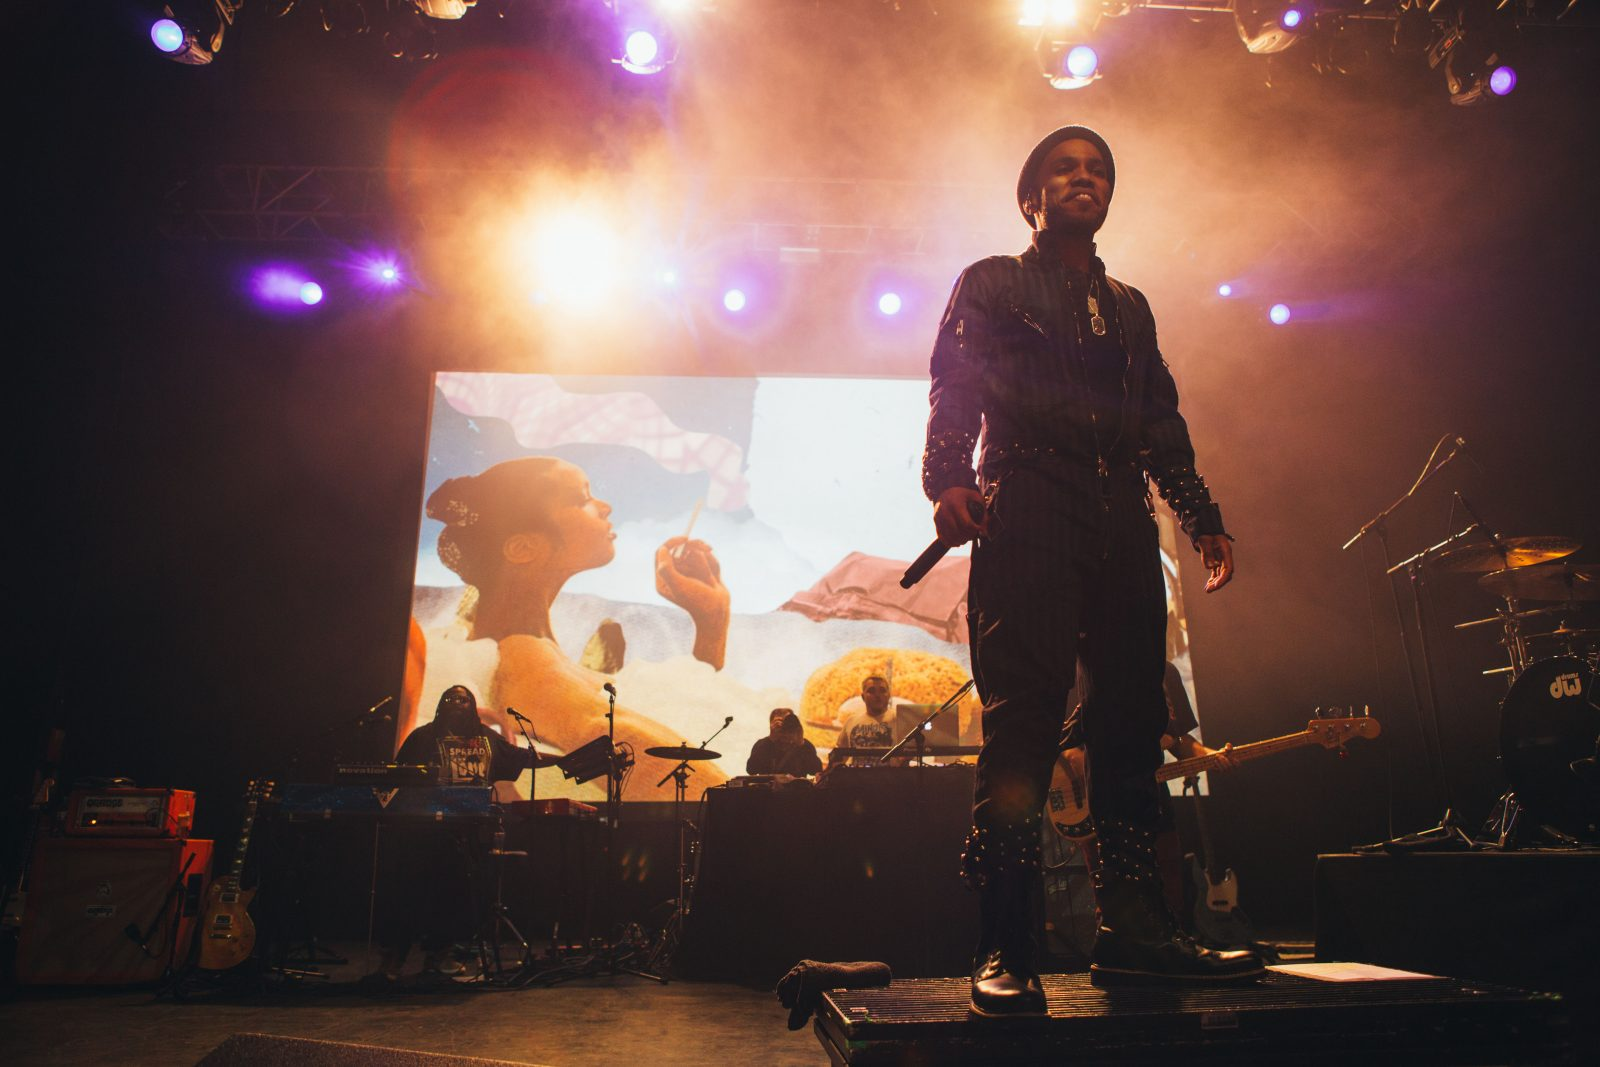 An evening at Anderson .Paak's sold out show